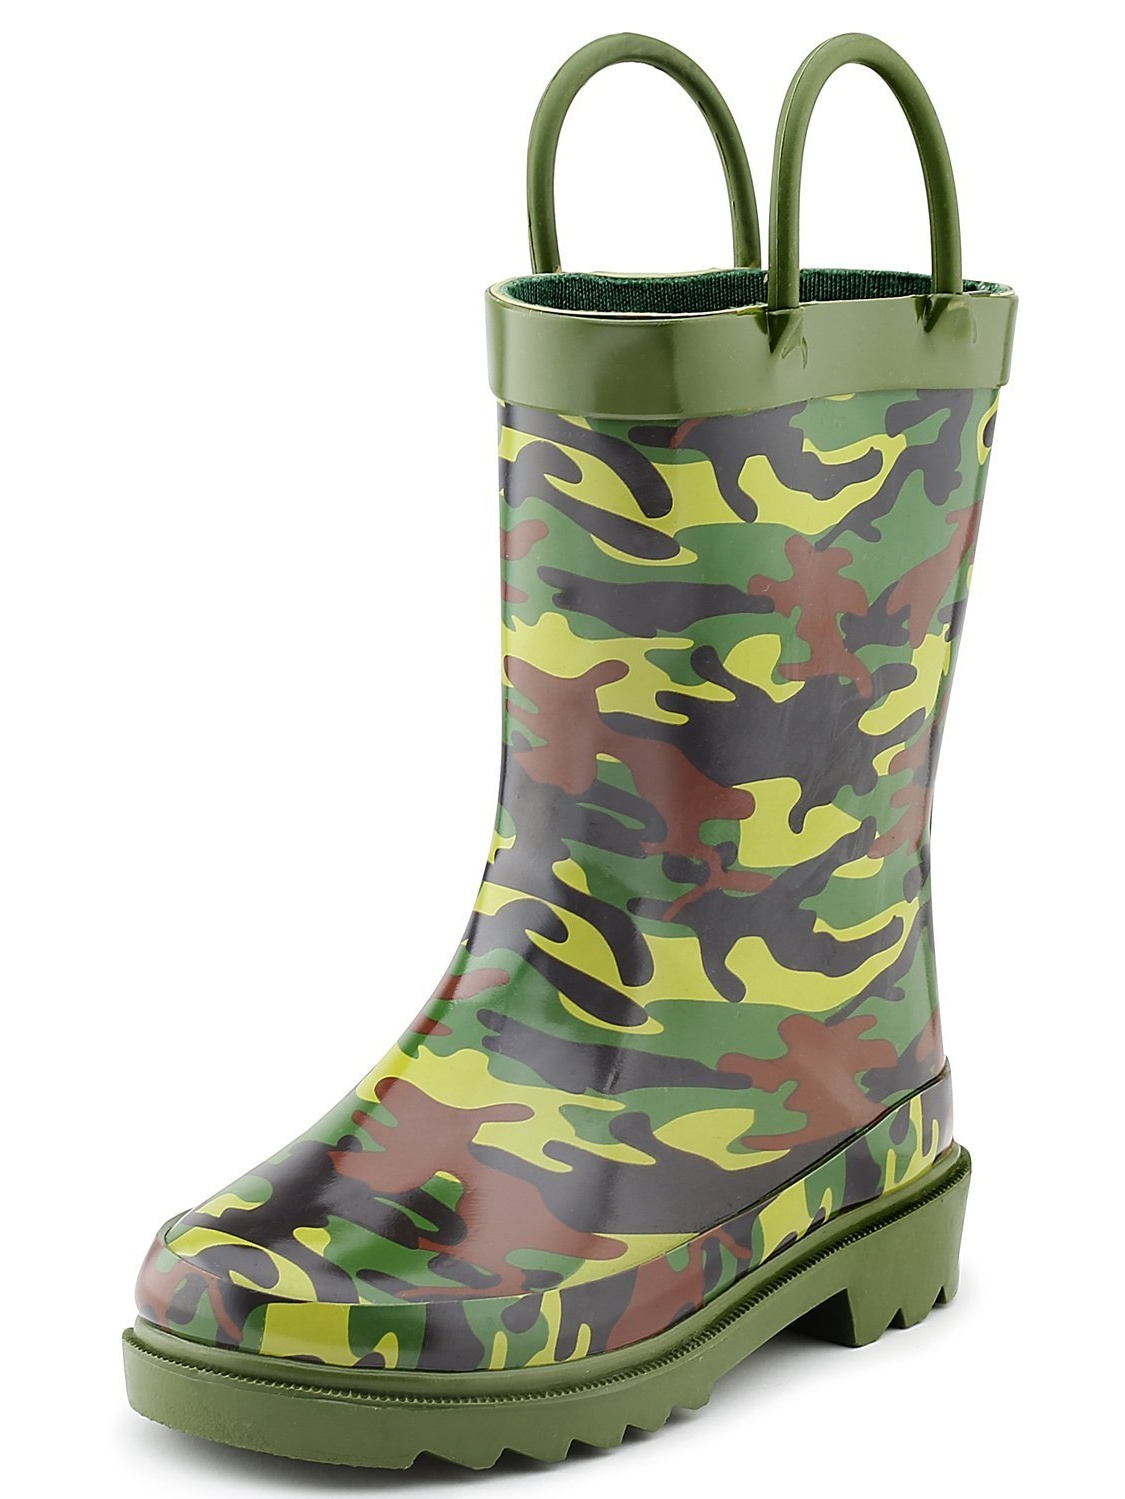 Puddle Play Children's Boys' Camouflage Printed Waterproof Easy-On Rubber Rain Boots (Toddler/Little Kids)